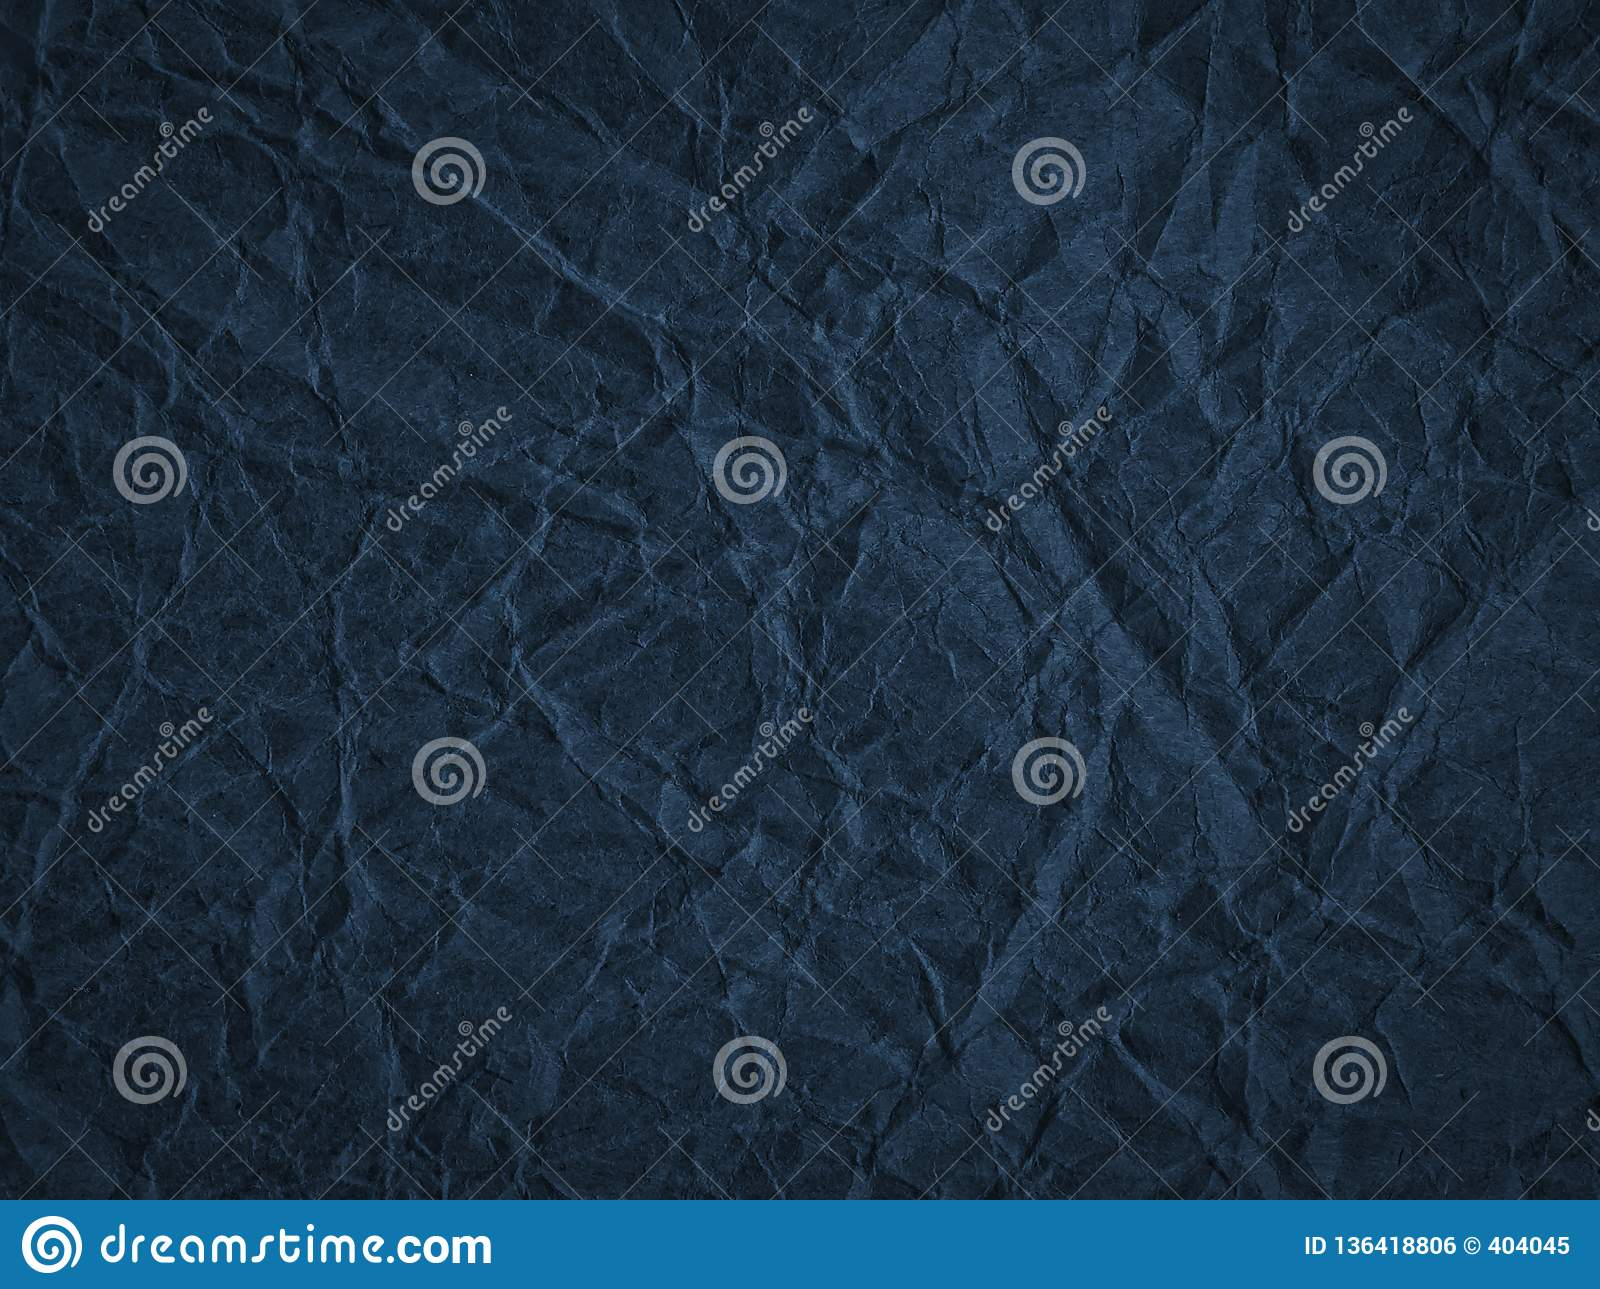 Texture of crumpled craft paper. Abstract background